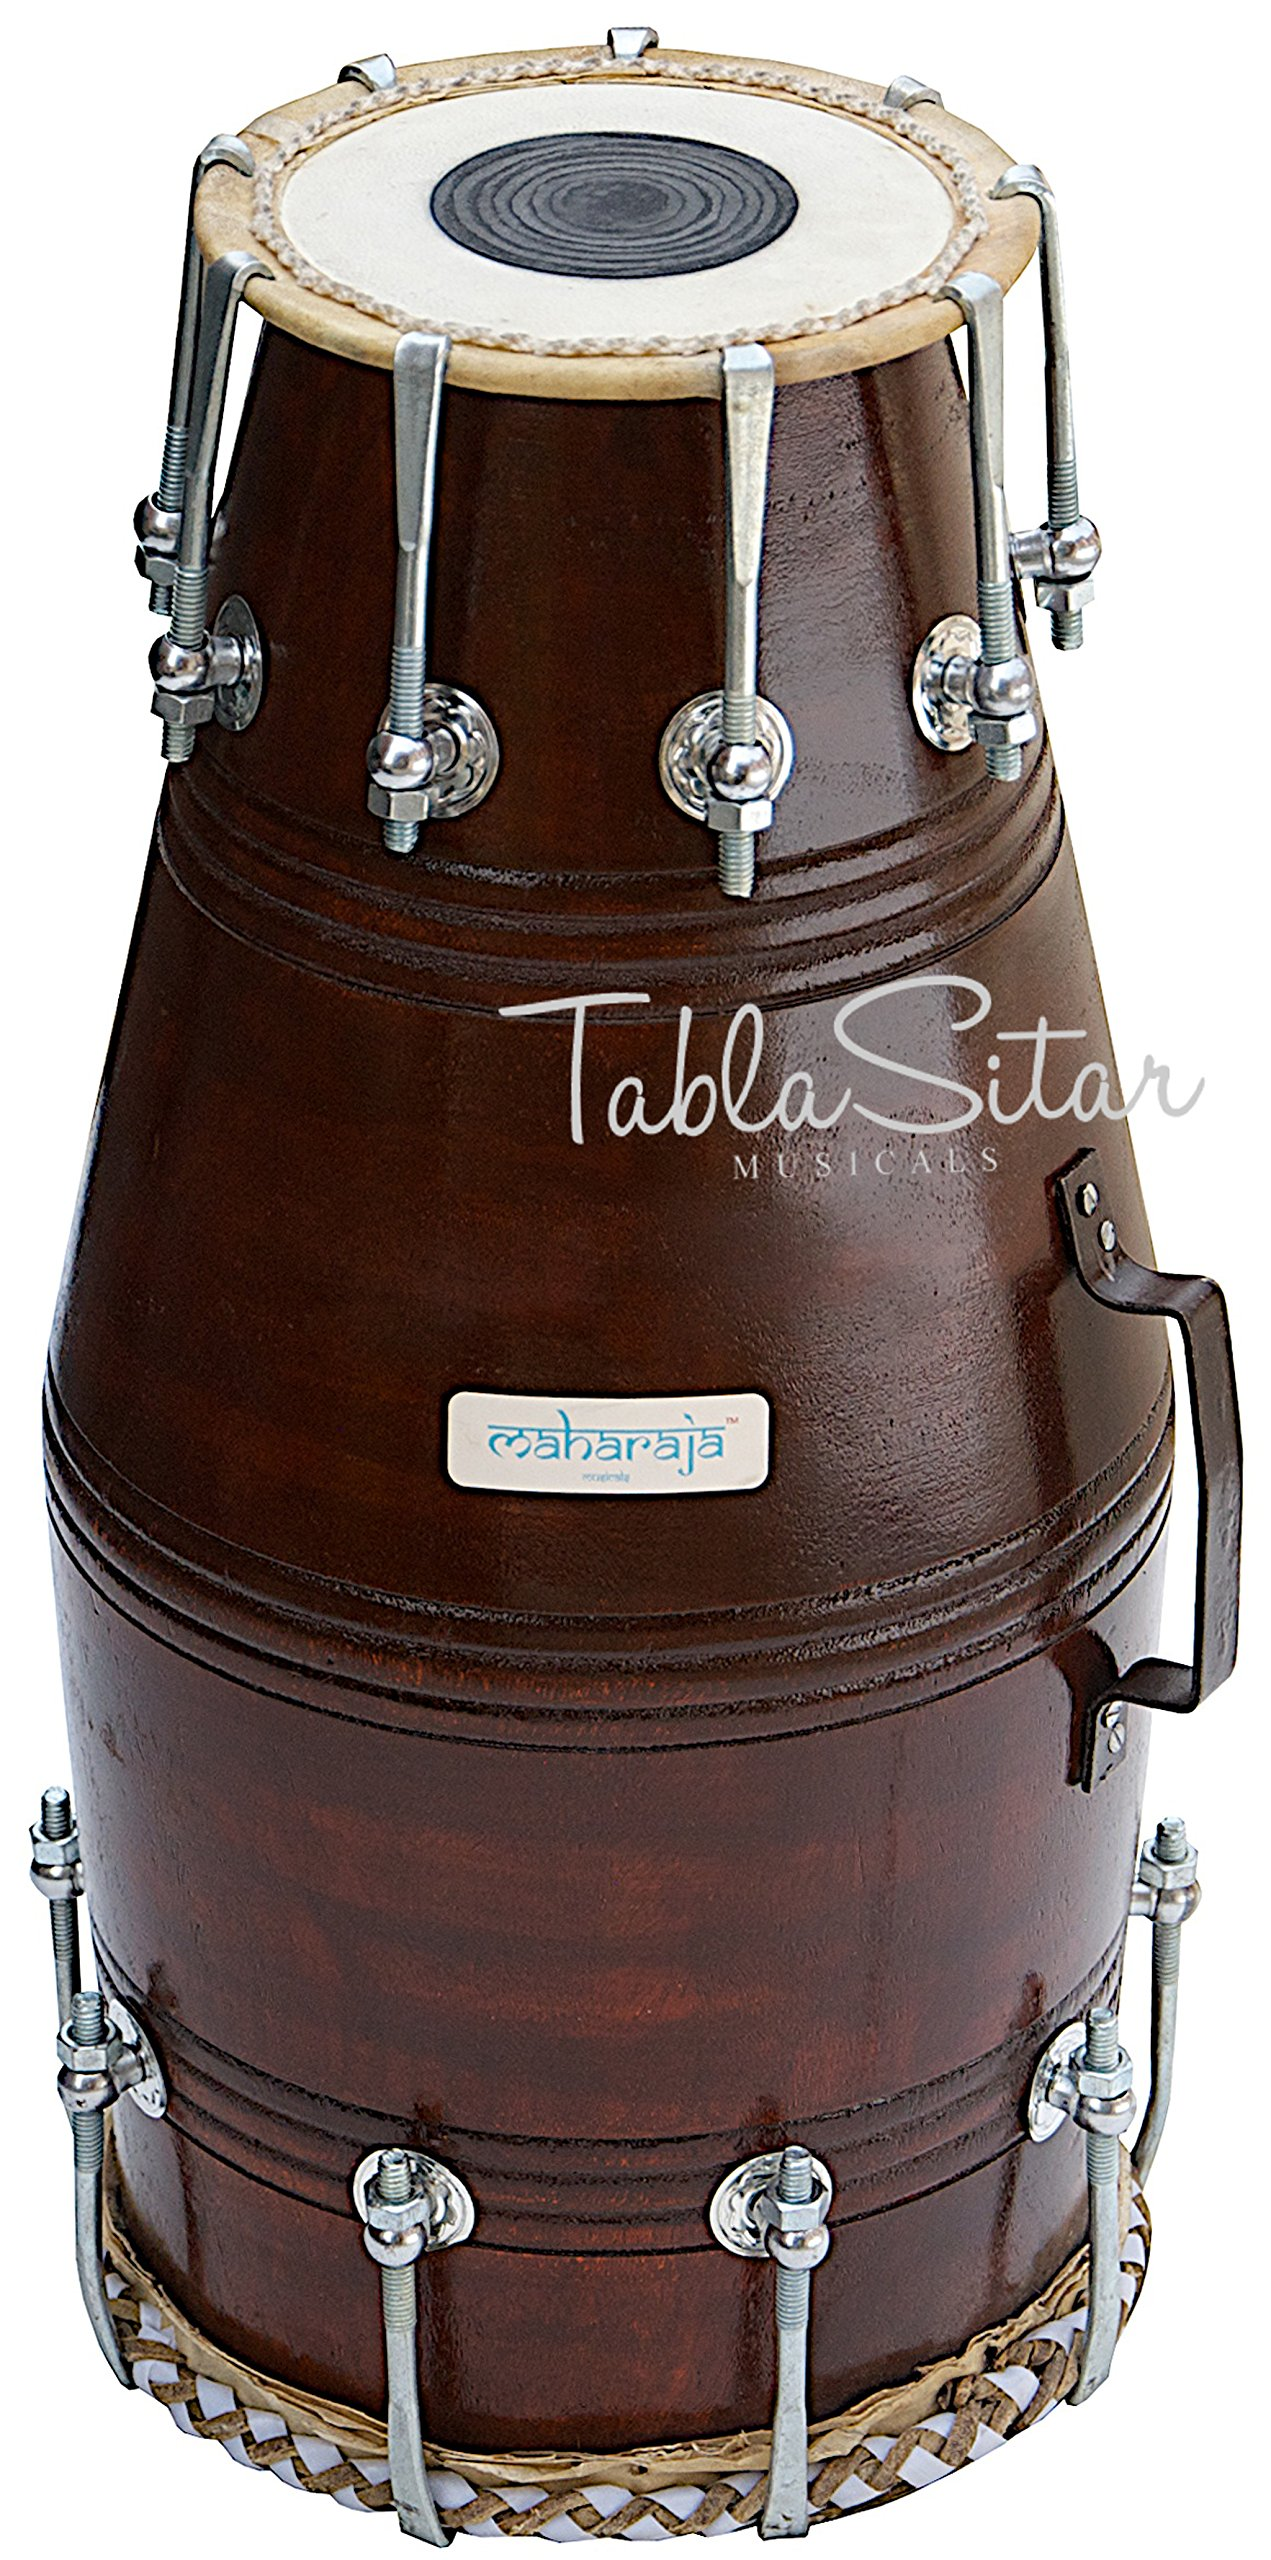 Naal Dholak Drum by Maharaja Musicals, Professional, Sheesham Wood, Bolt-tuned, Padded Bag, Dholak Musical Instrument (PDI-EF) by Maharaja Musicals